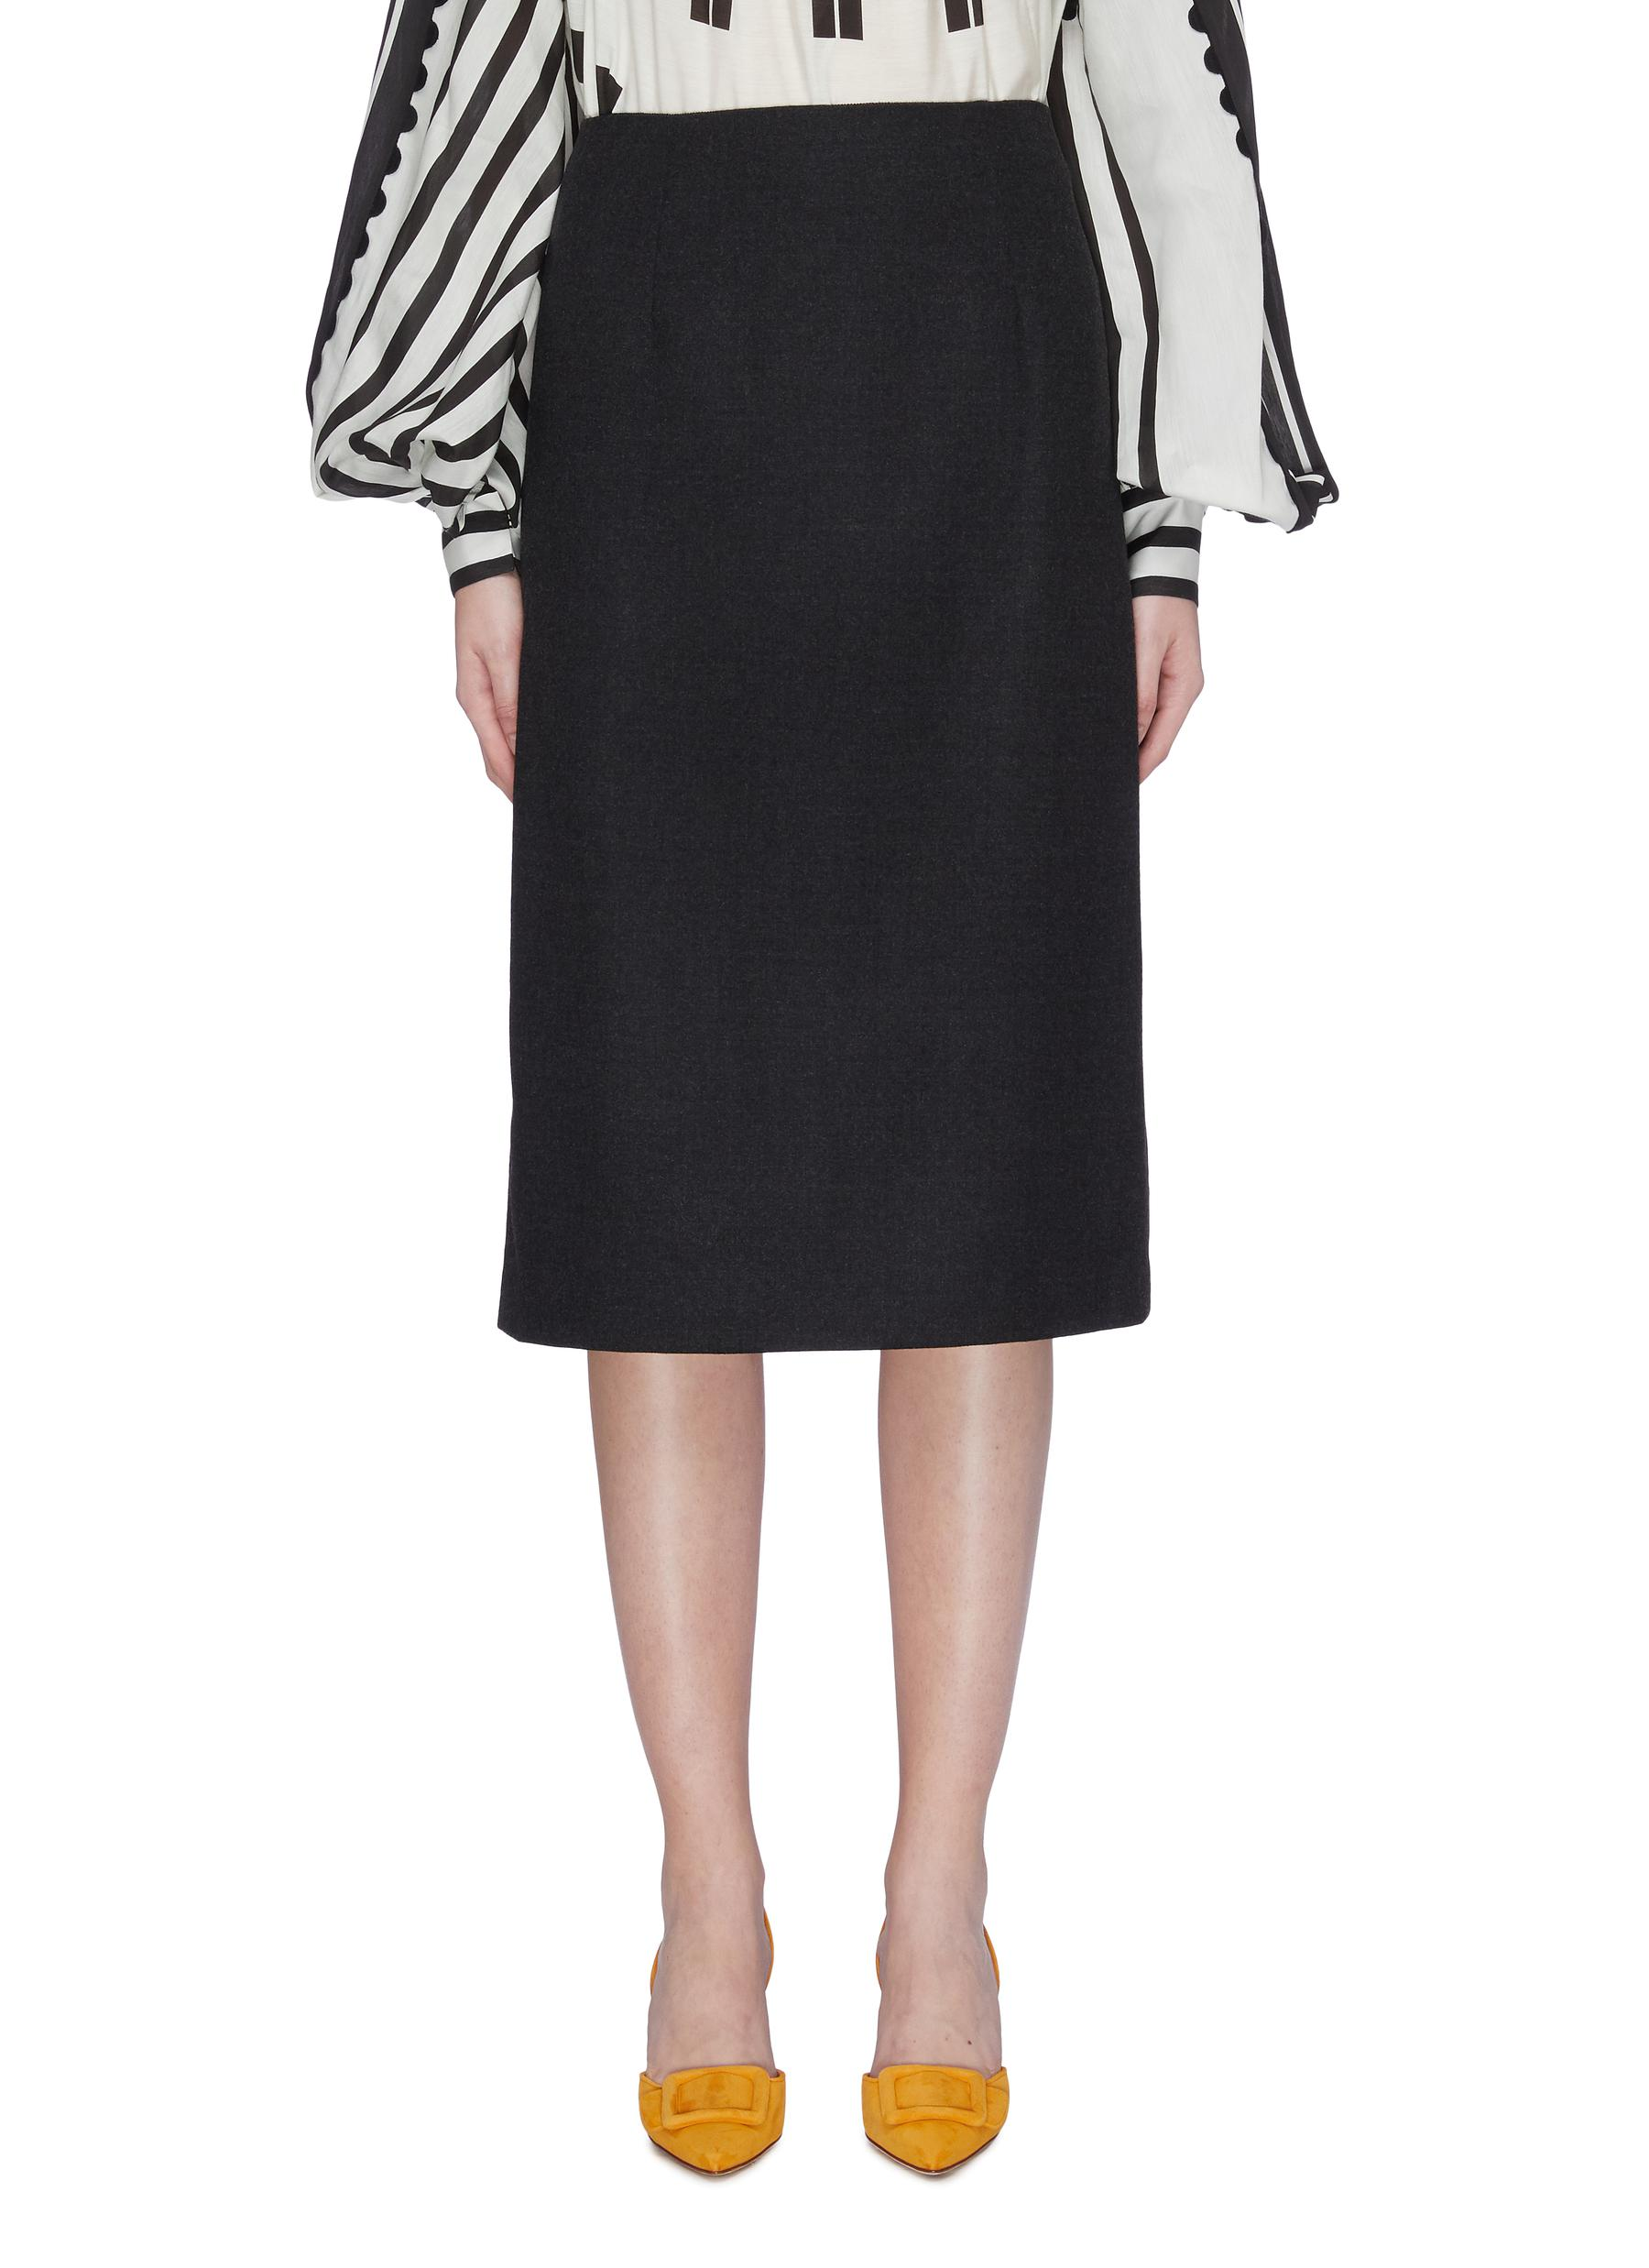 Wool pencil skirt by Oscar De La Renta